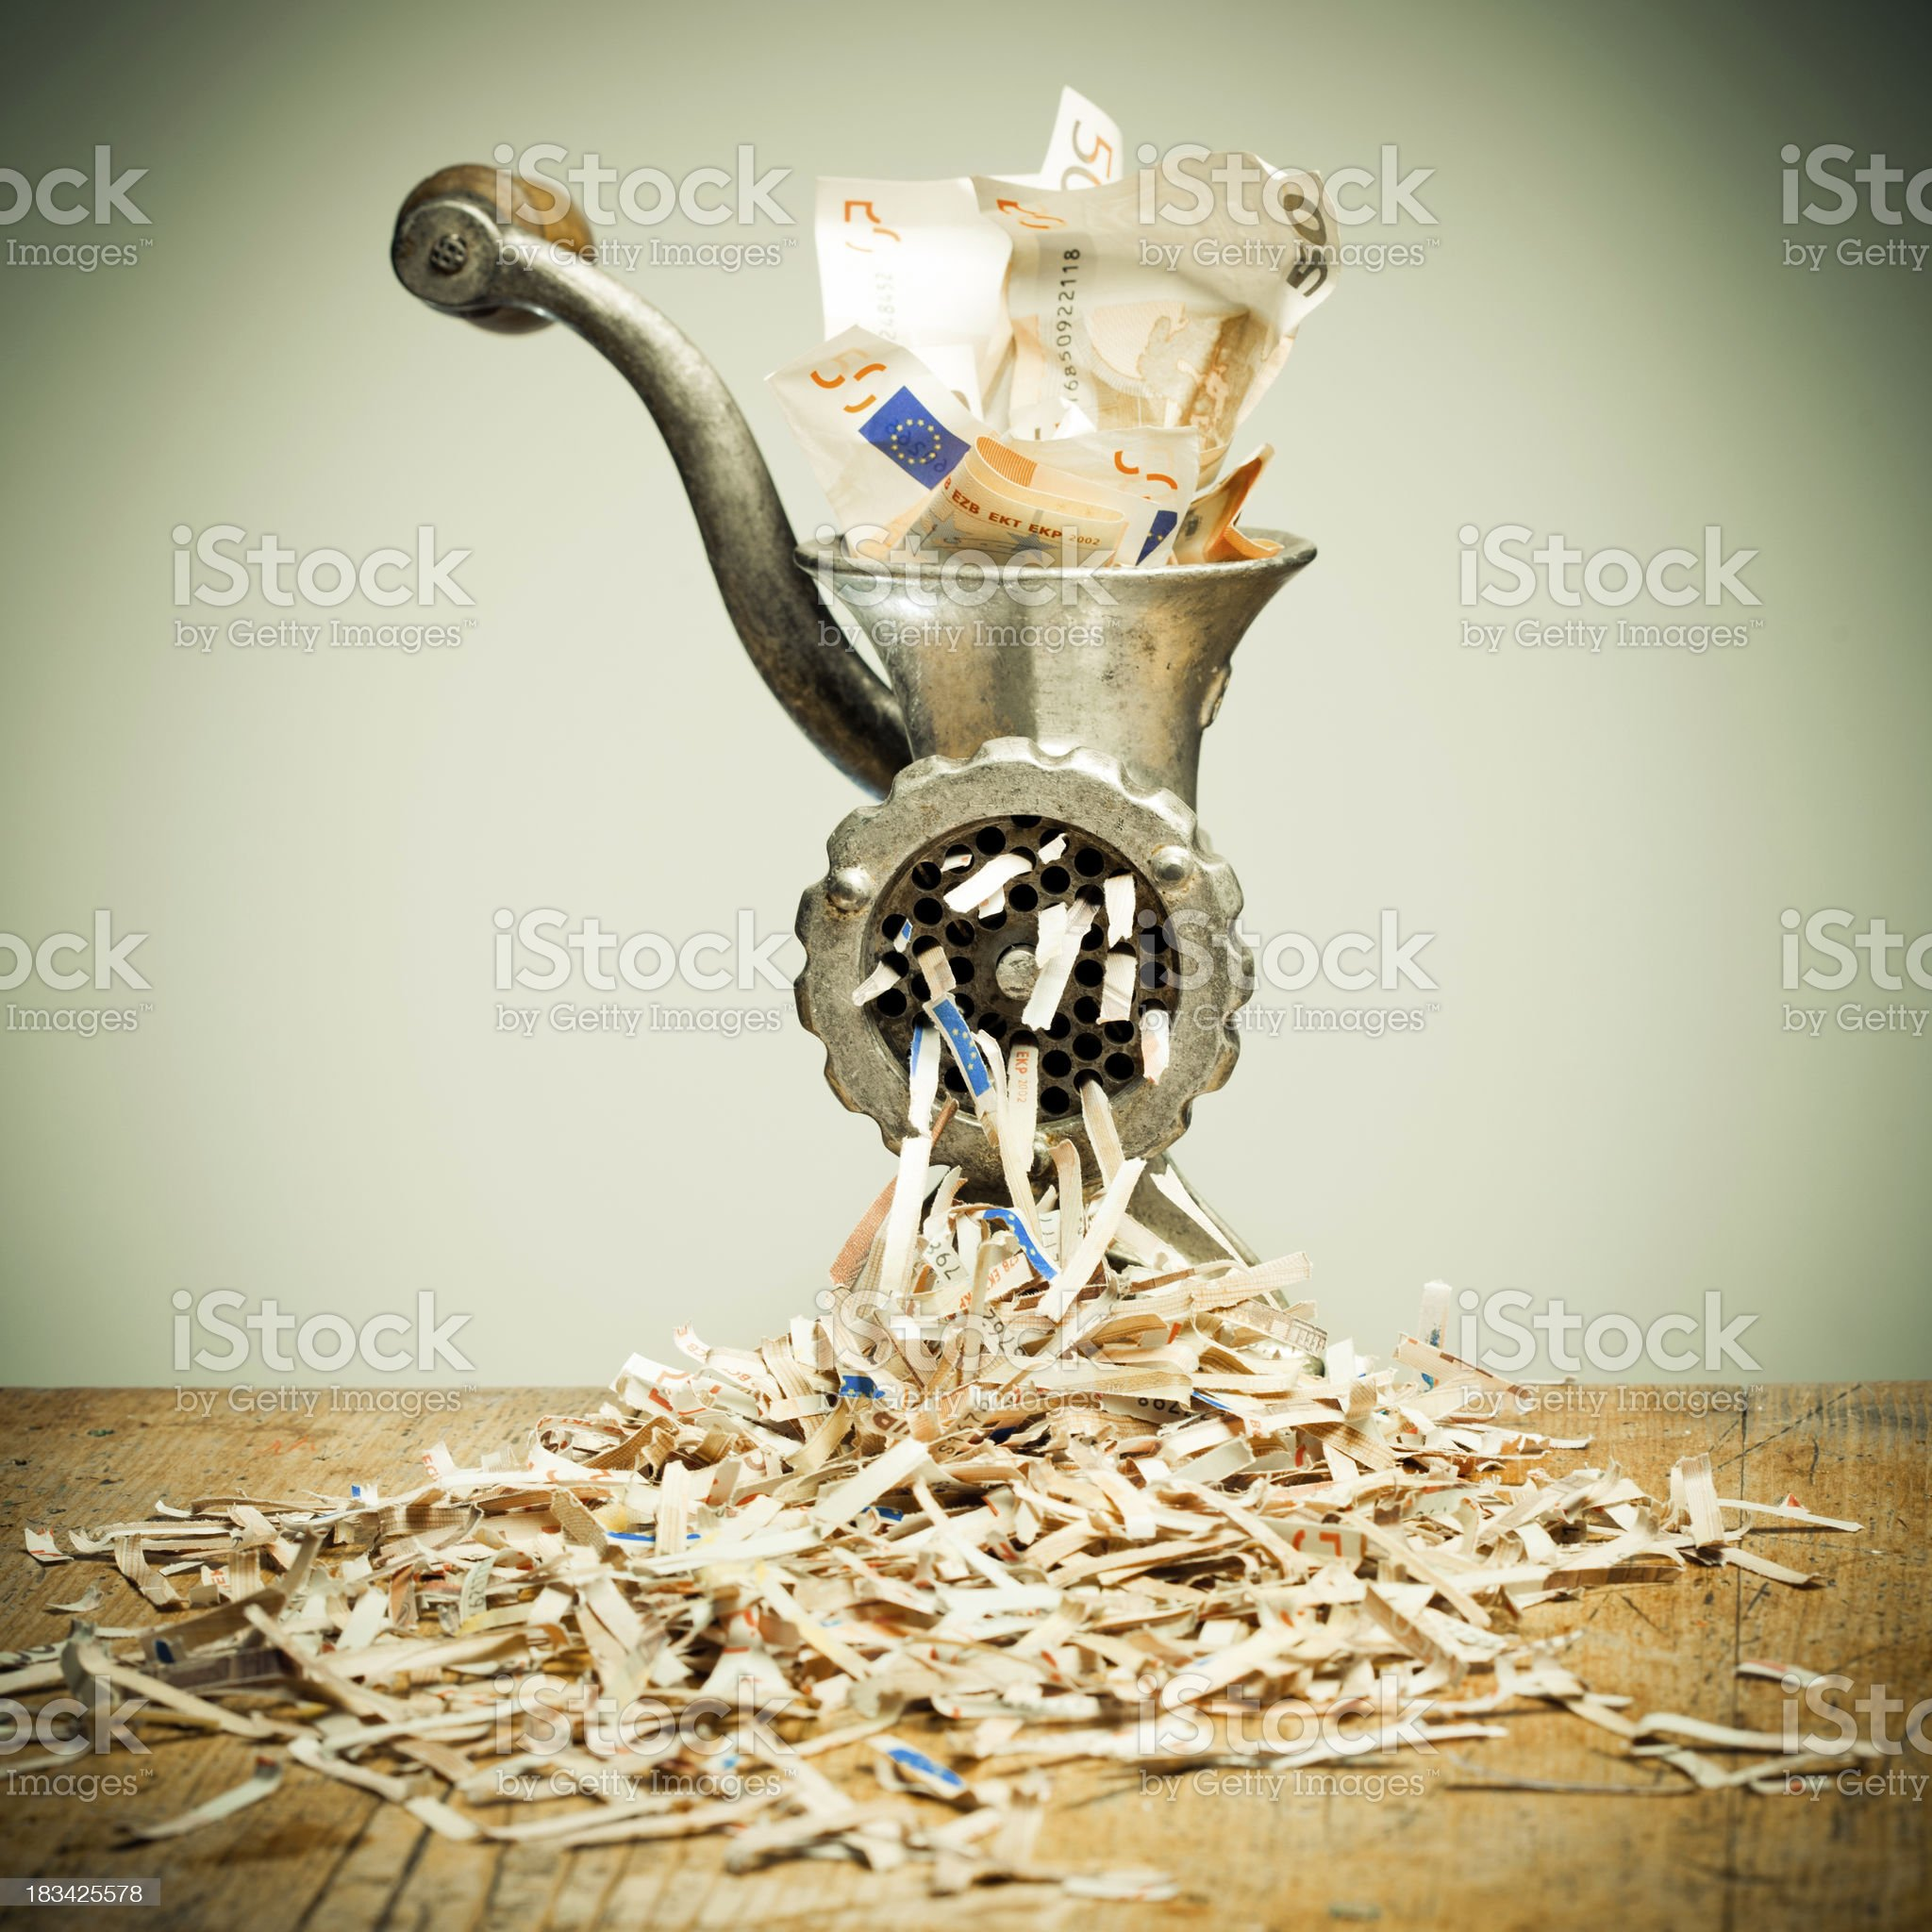 Grinder with Euro notes royalty-free stock photo